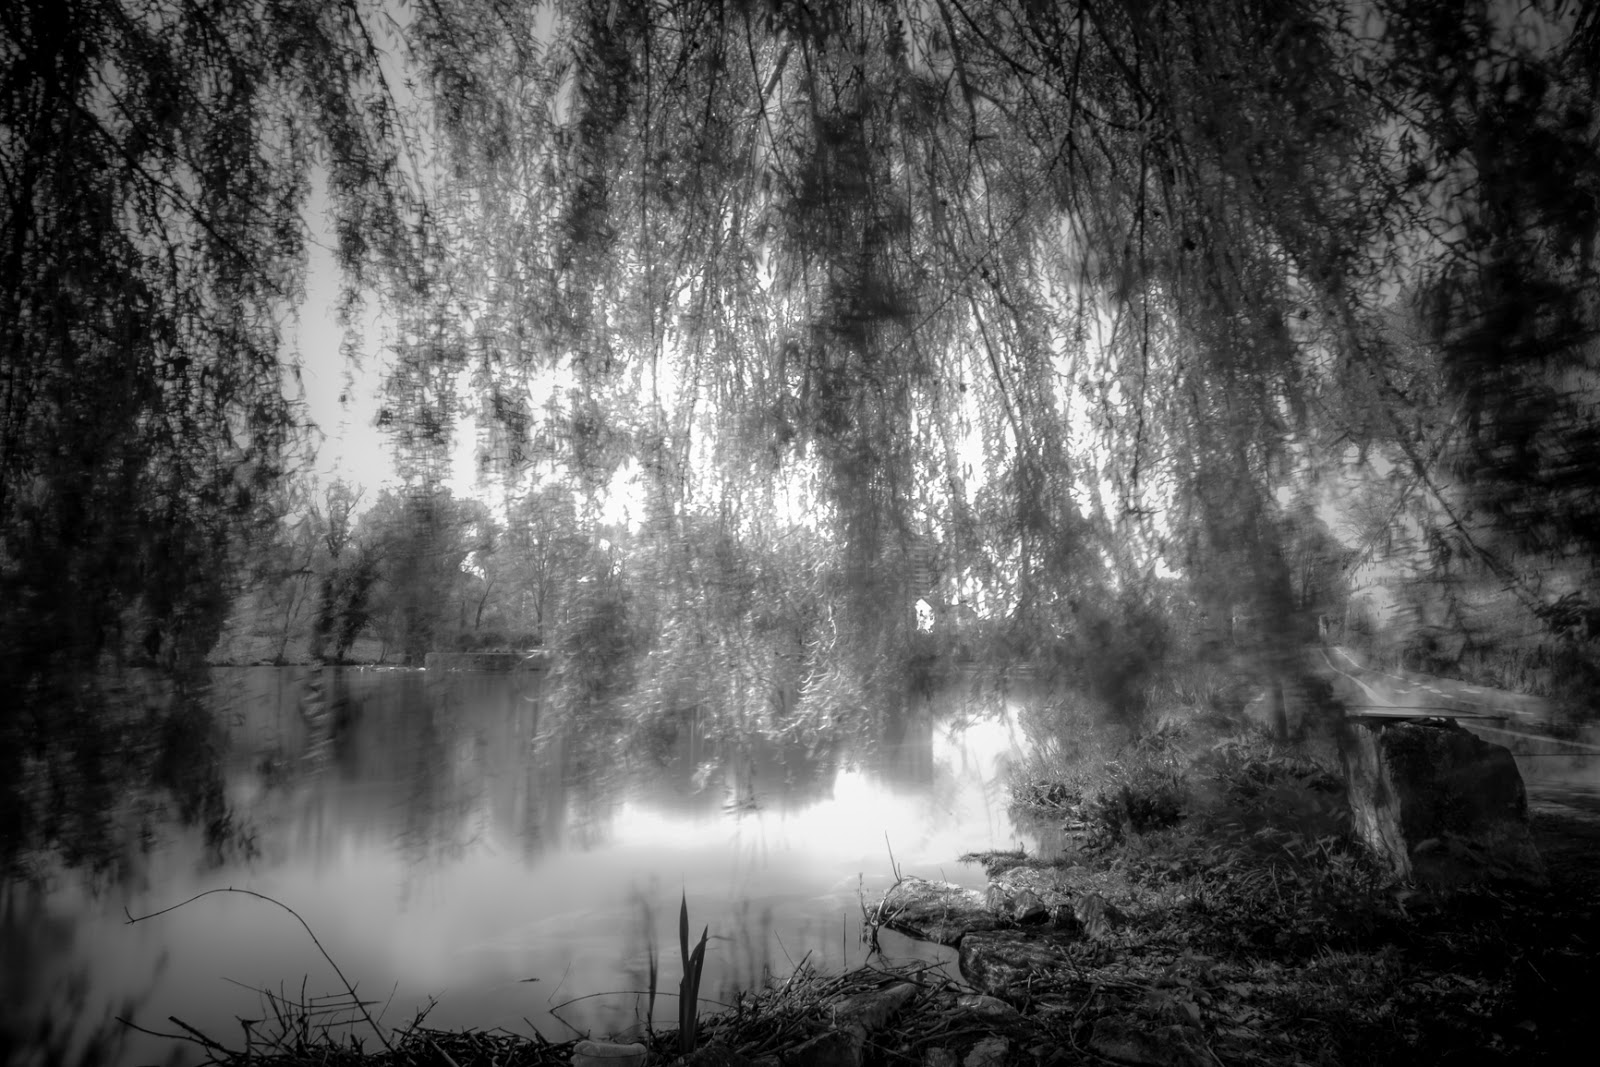 Matthew G. Beall Motion vision driven black and white fine art photography  Caught Danube River and Trees  2012/2014  Germany